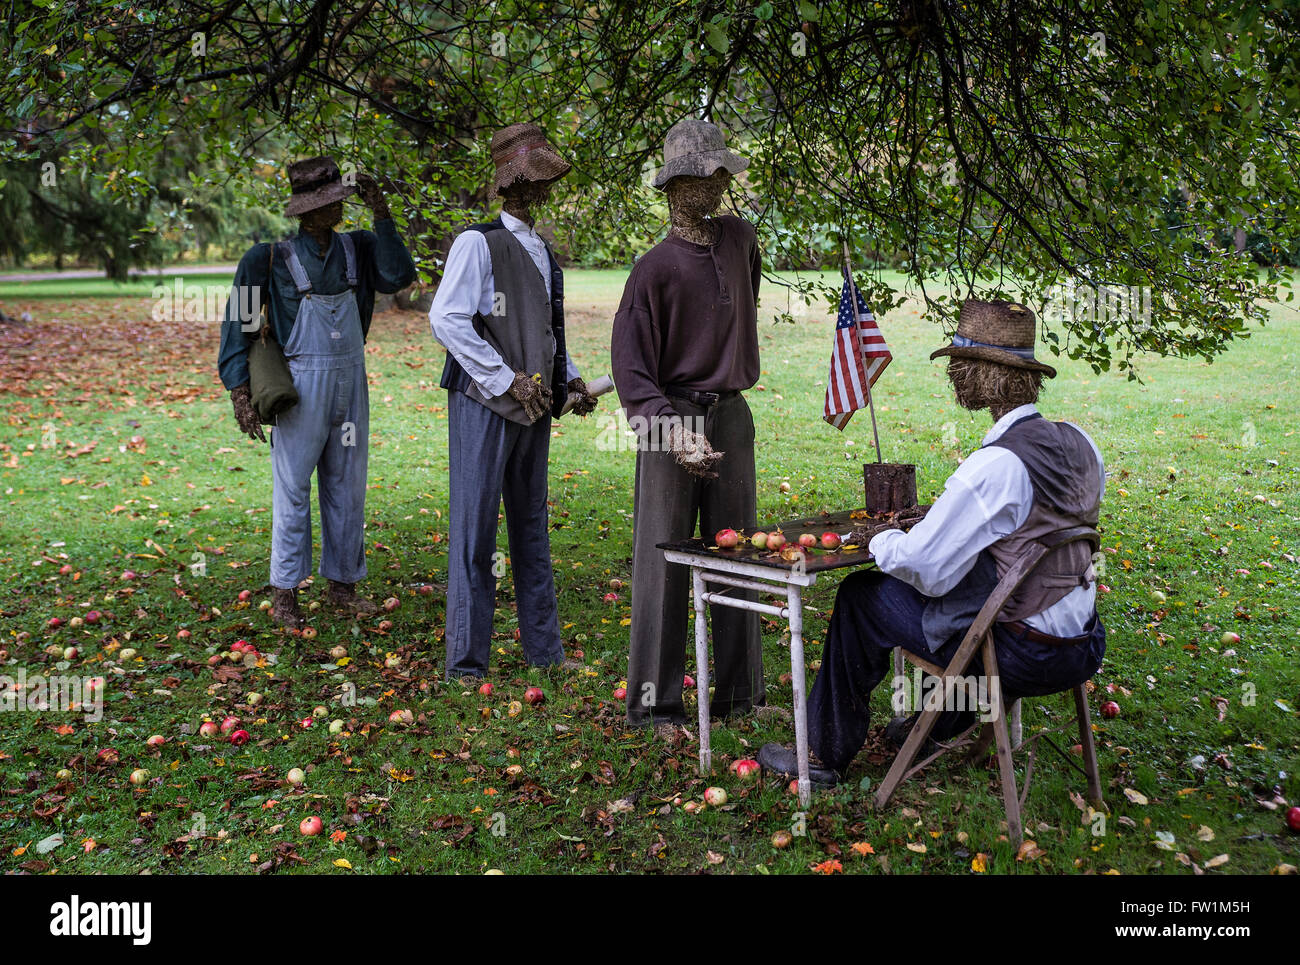 Straw-man reenactment of army recruitment efforts to enlist black men following Lincoln's Emancipation Proclamation. - Stock Image